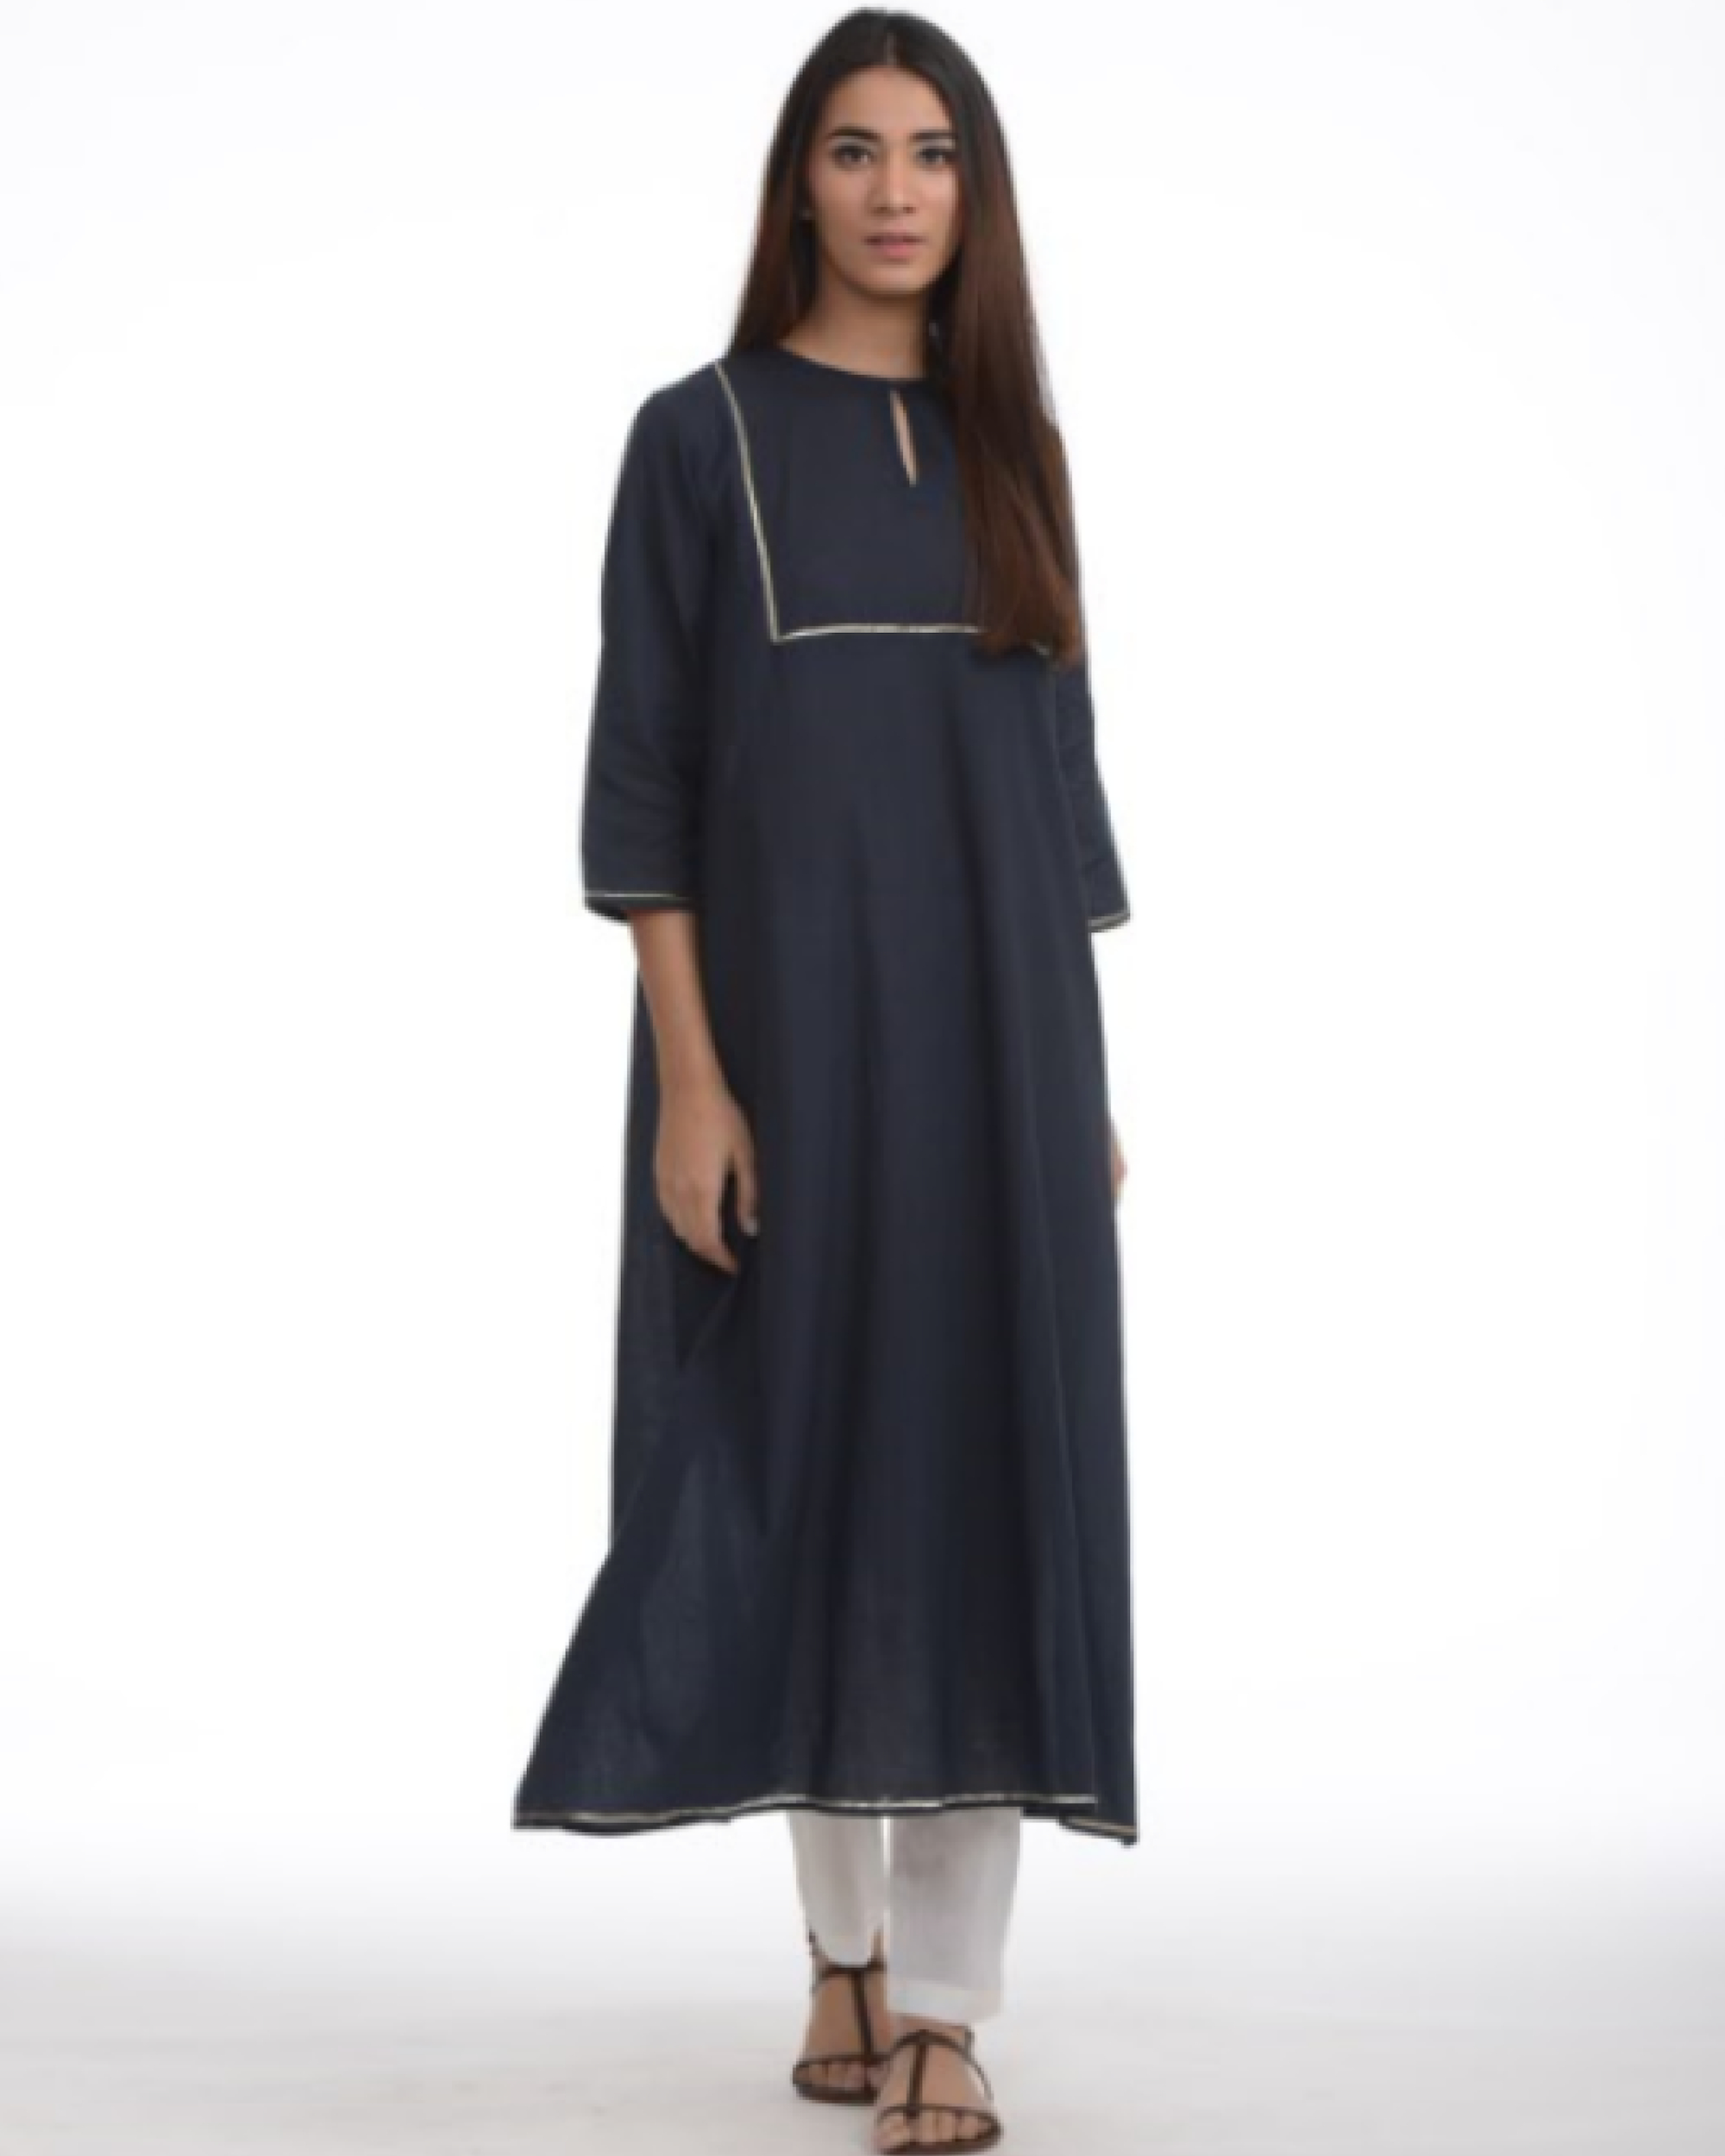 Navy blue tunic with cigarette pants